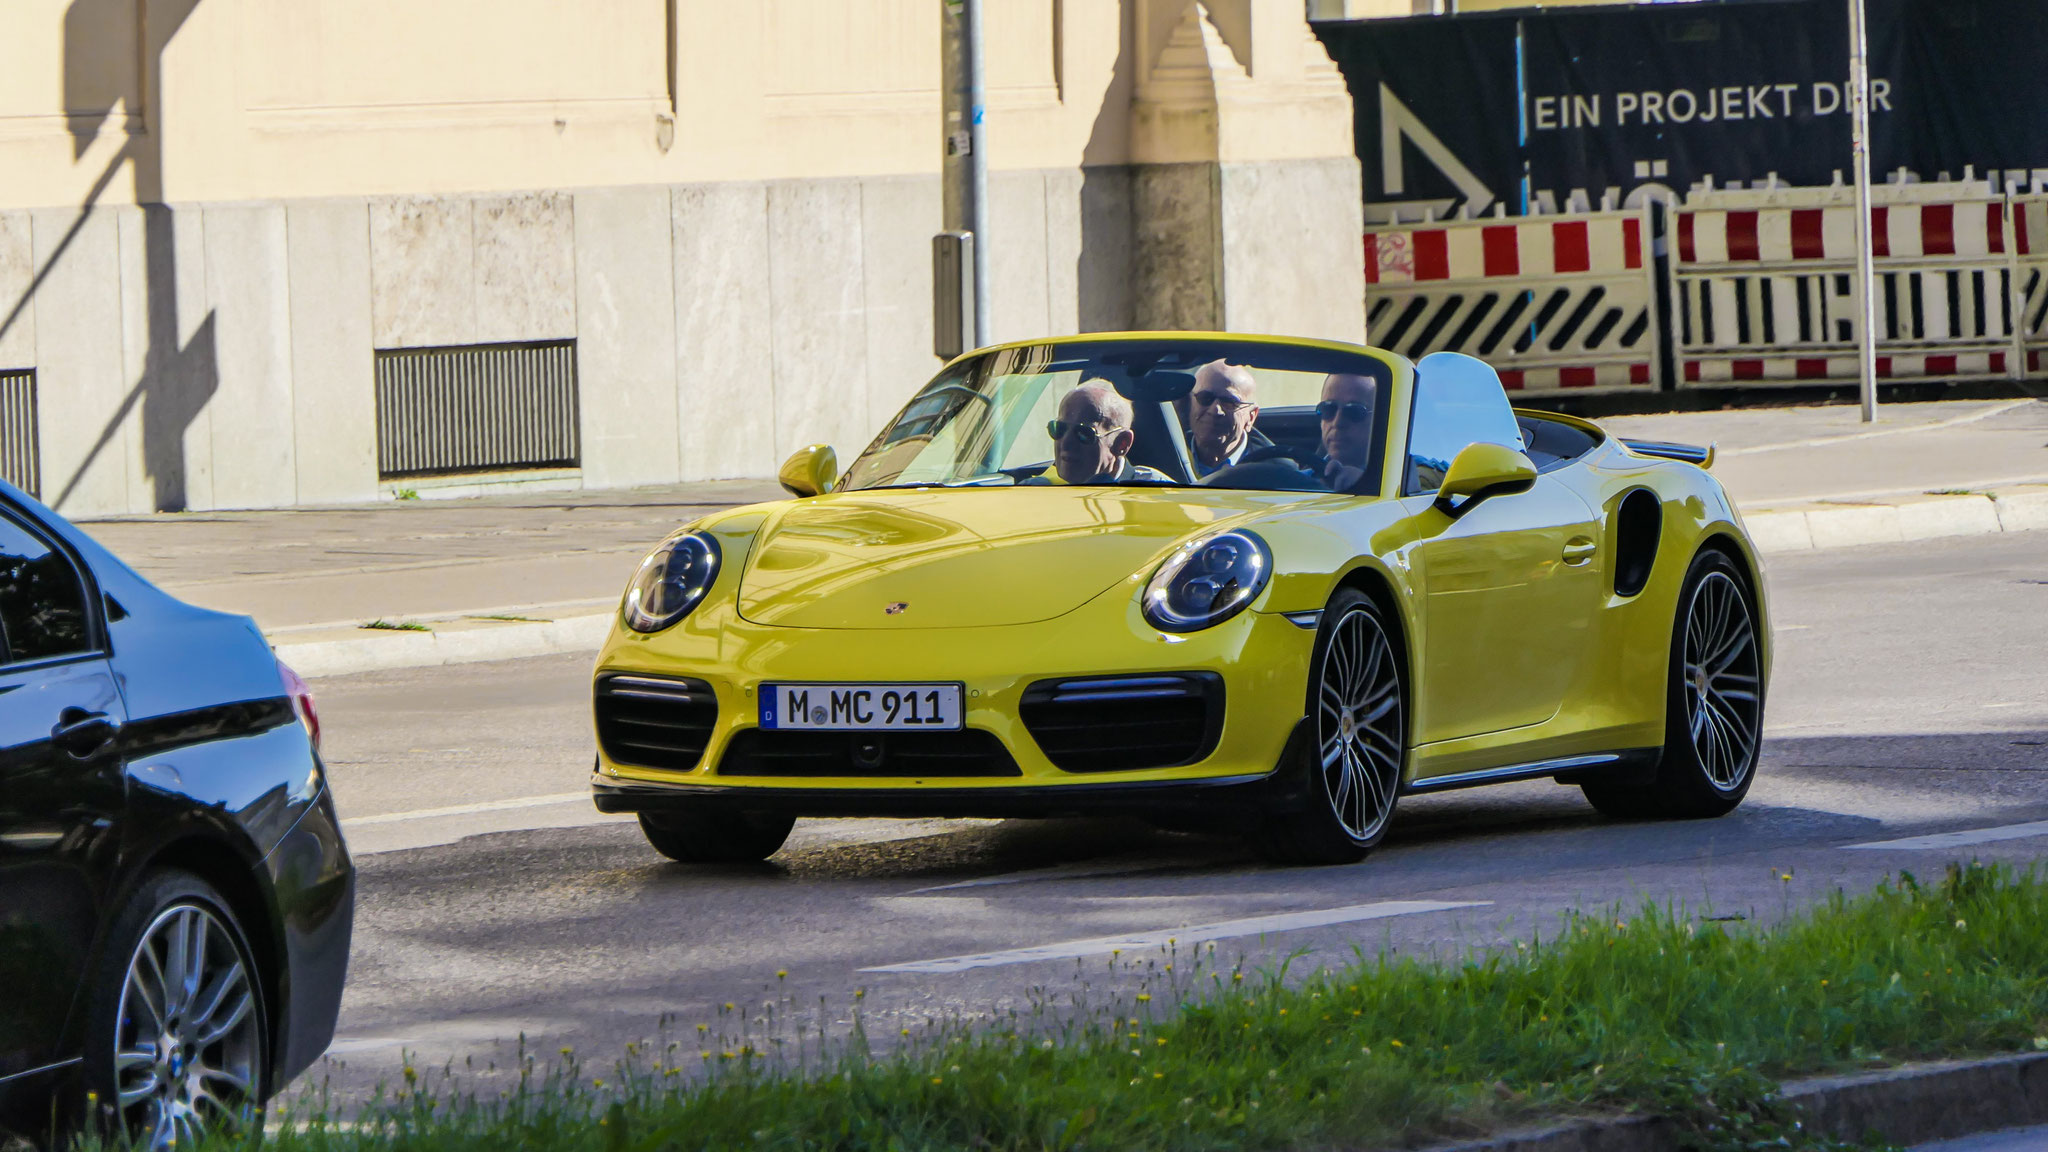 Porsche 911 Turbo S - M-MC-911